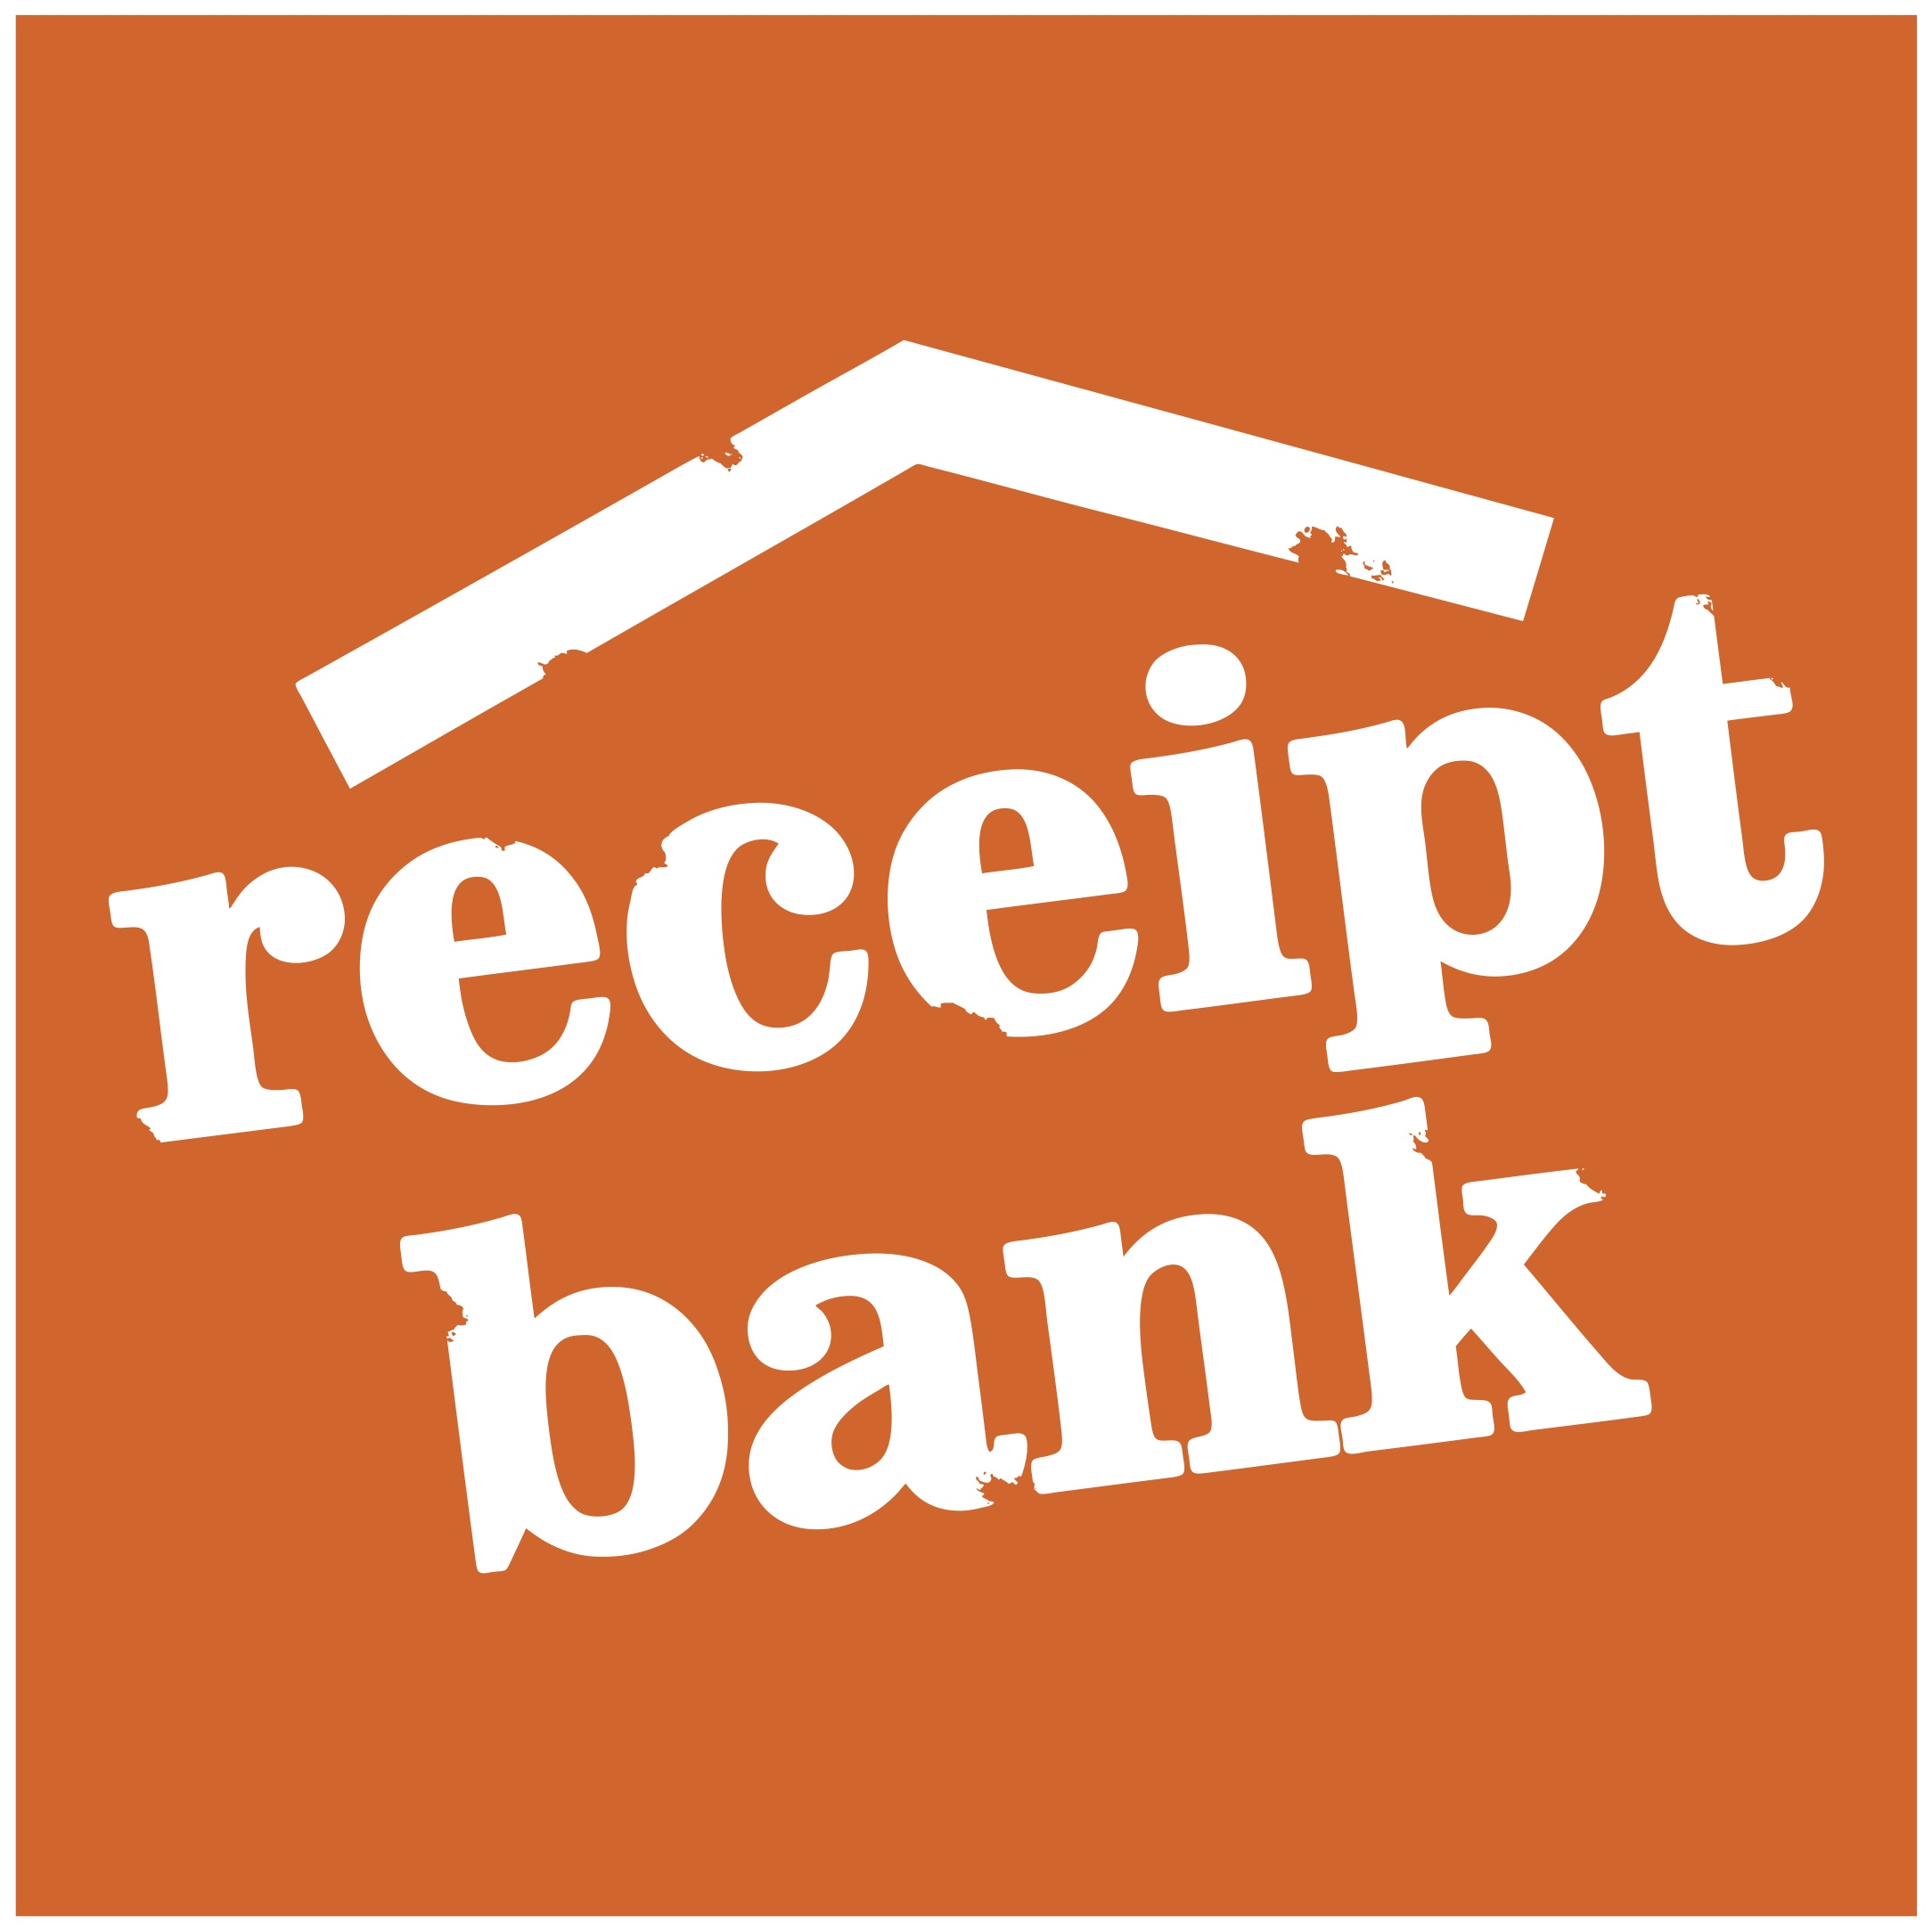 Receipt Bank - Automated bookkeeping for every business.Say goodbye to storing paperwork and entering data. Staying on top of your bookkeeping has never been easier. Receipt Bank also connects seamlessly with the leading accounting, payroll and payment software, so you can build an end-to-end solution to suit you.